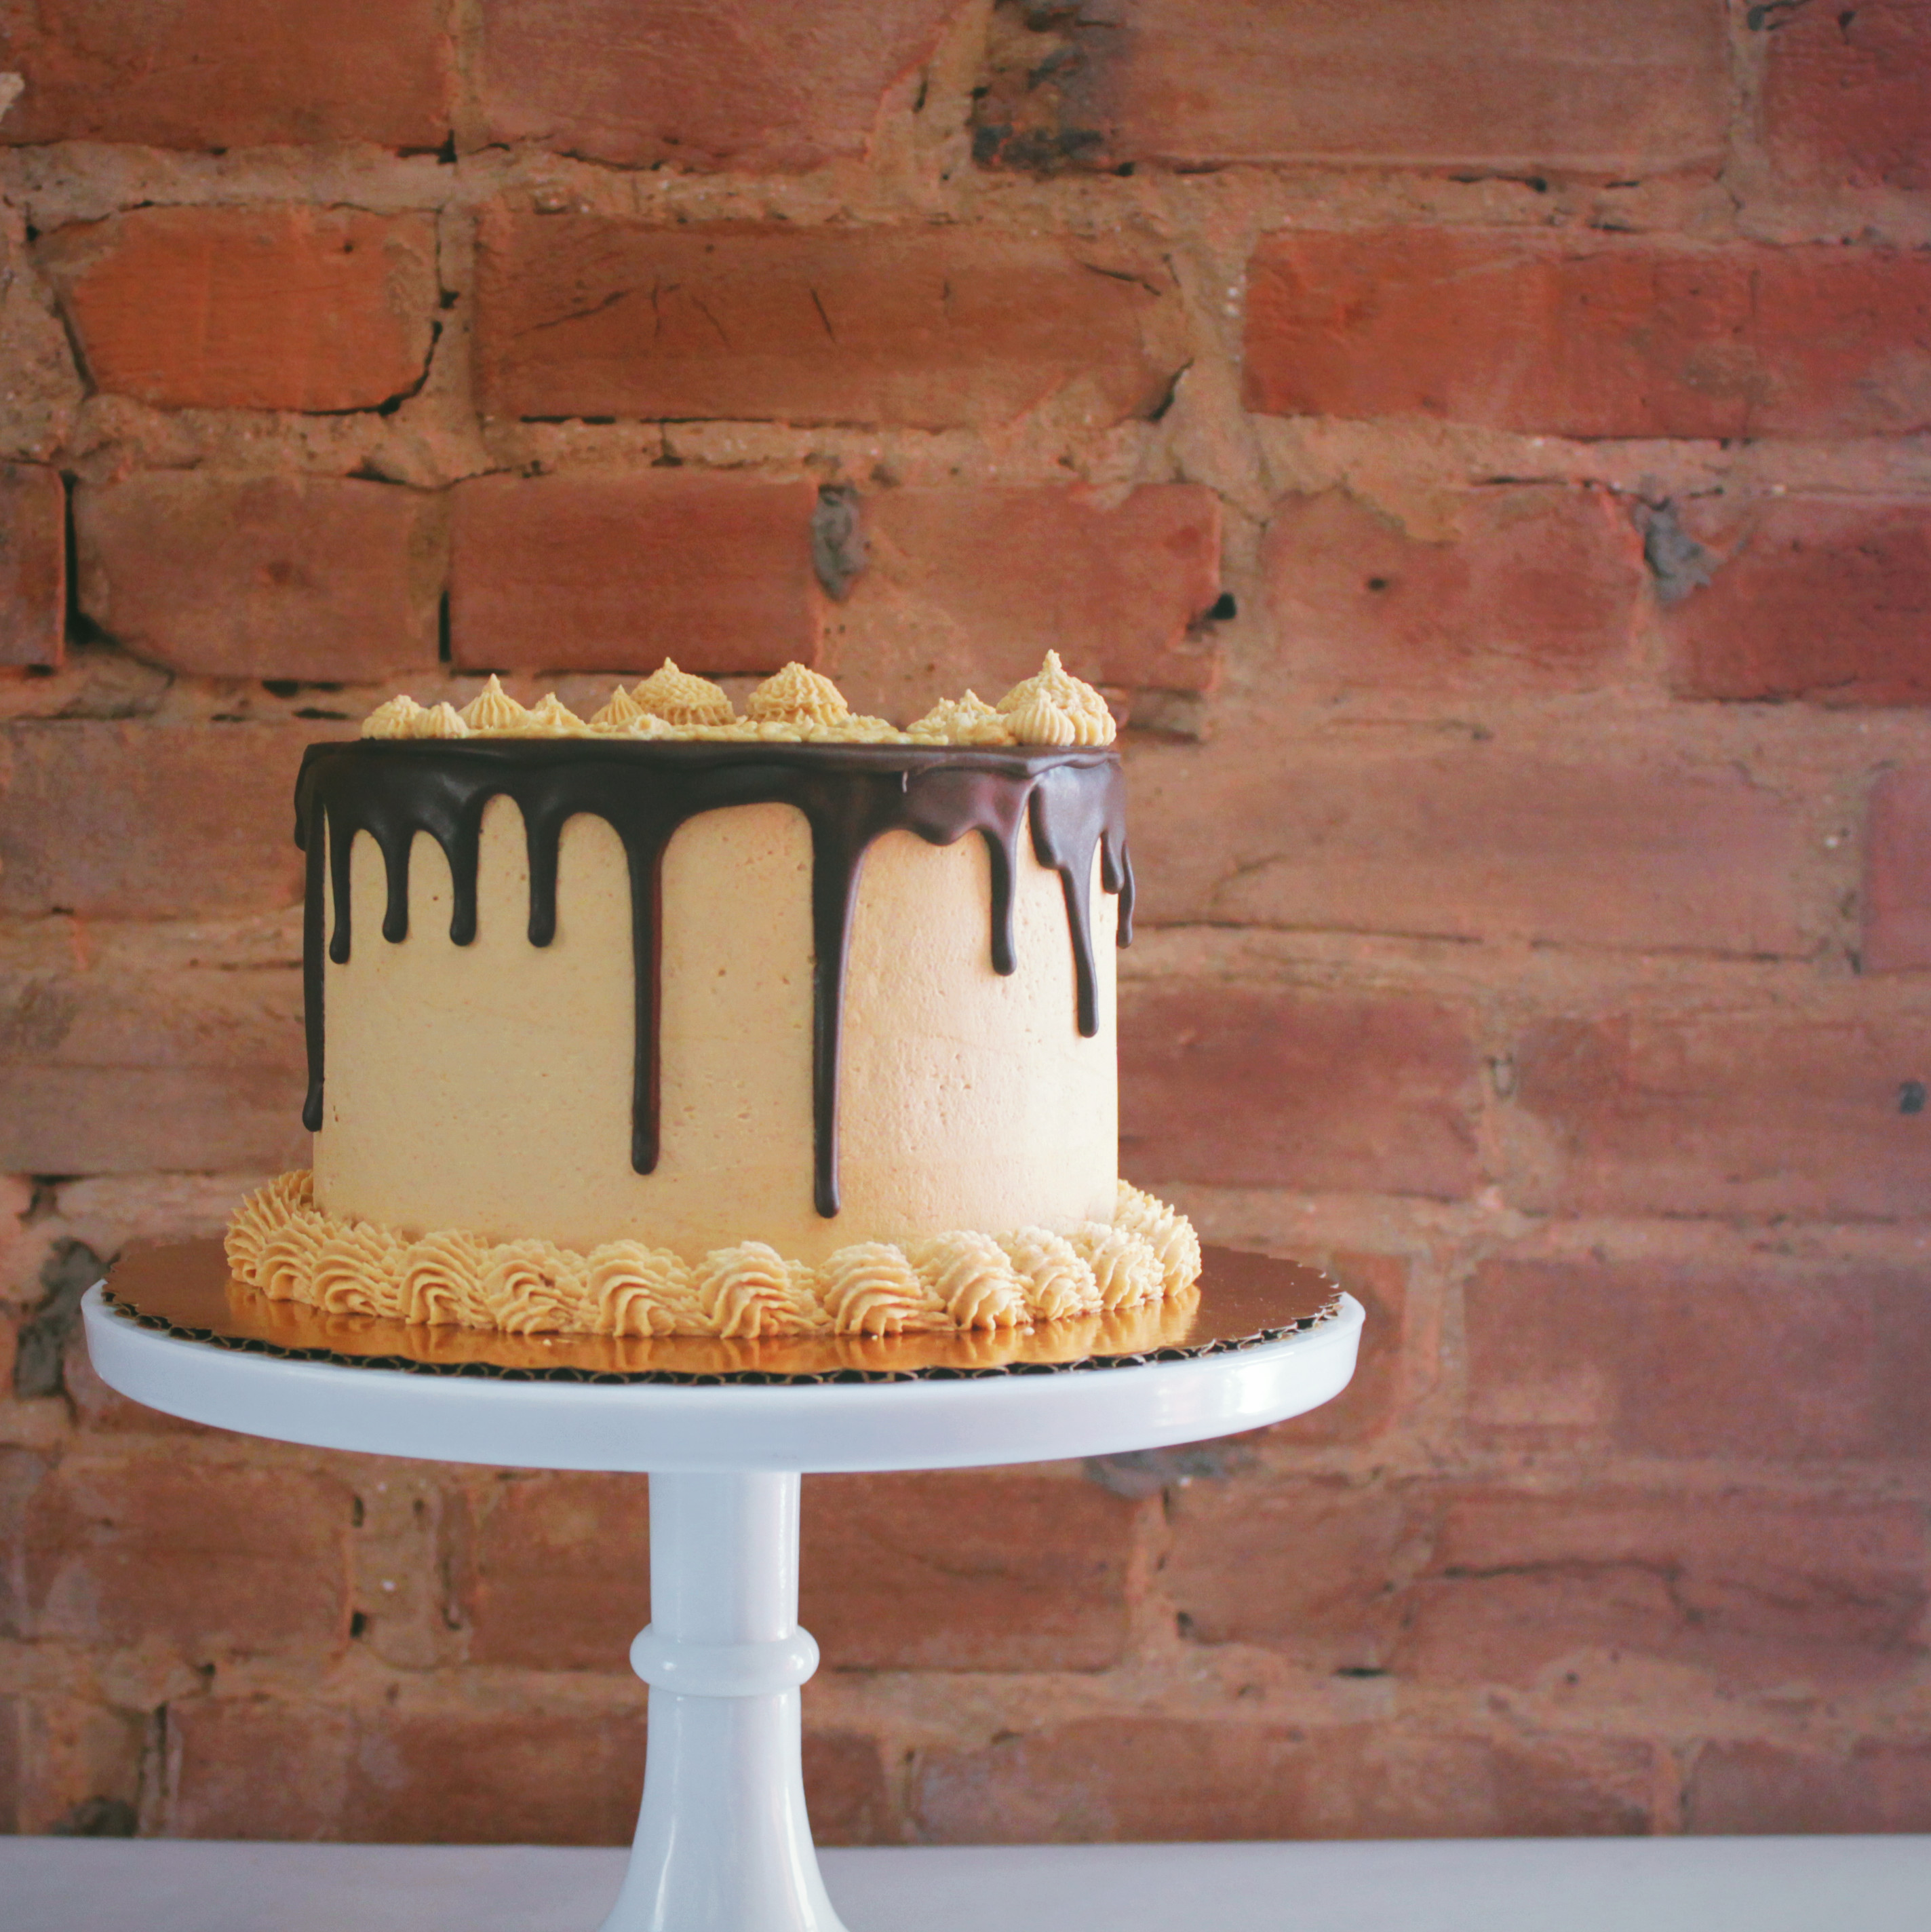 Chocolate cake with peanut butter buttercream frosting and a chocolate glaze drip.